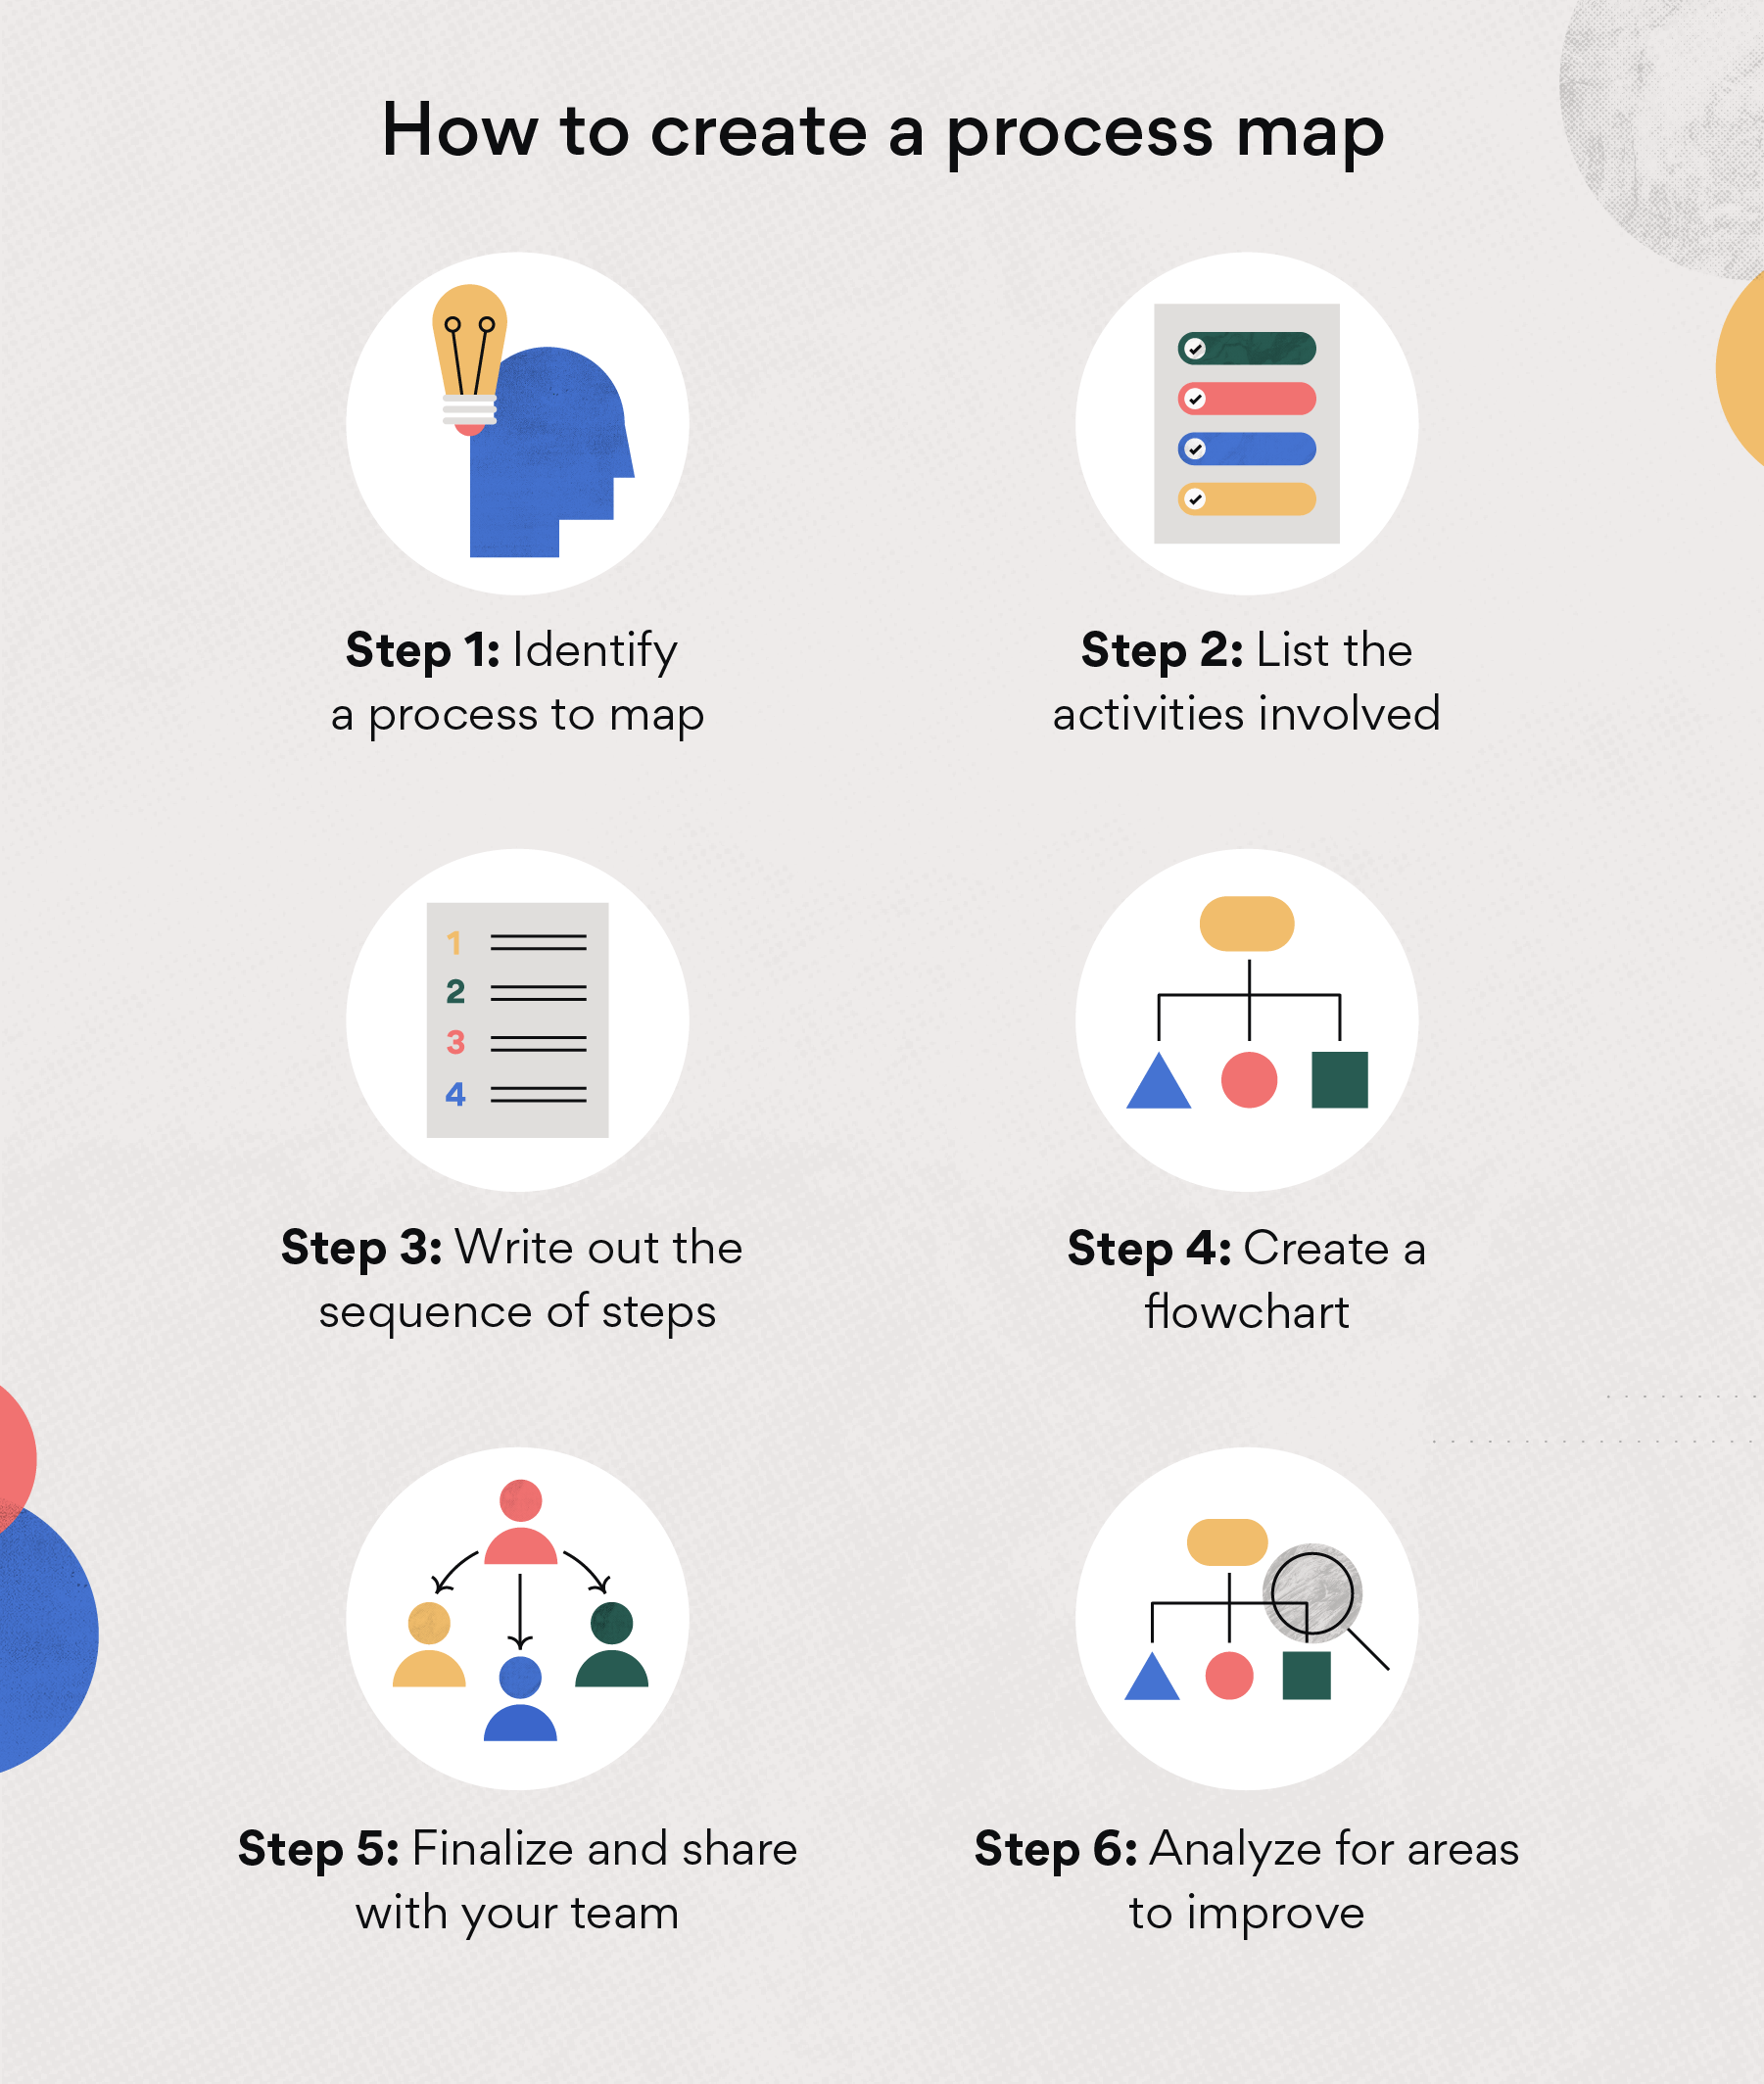 How to create a process map